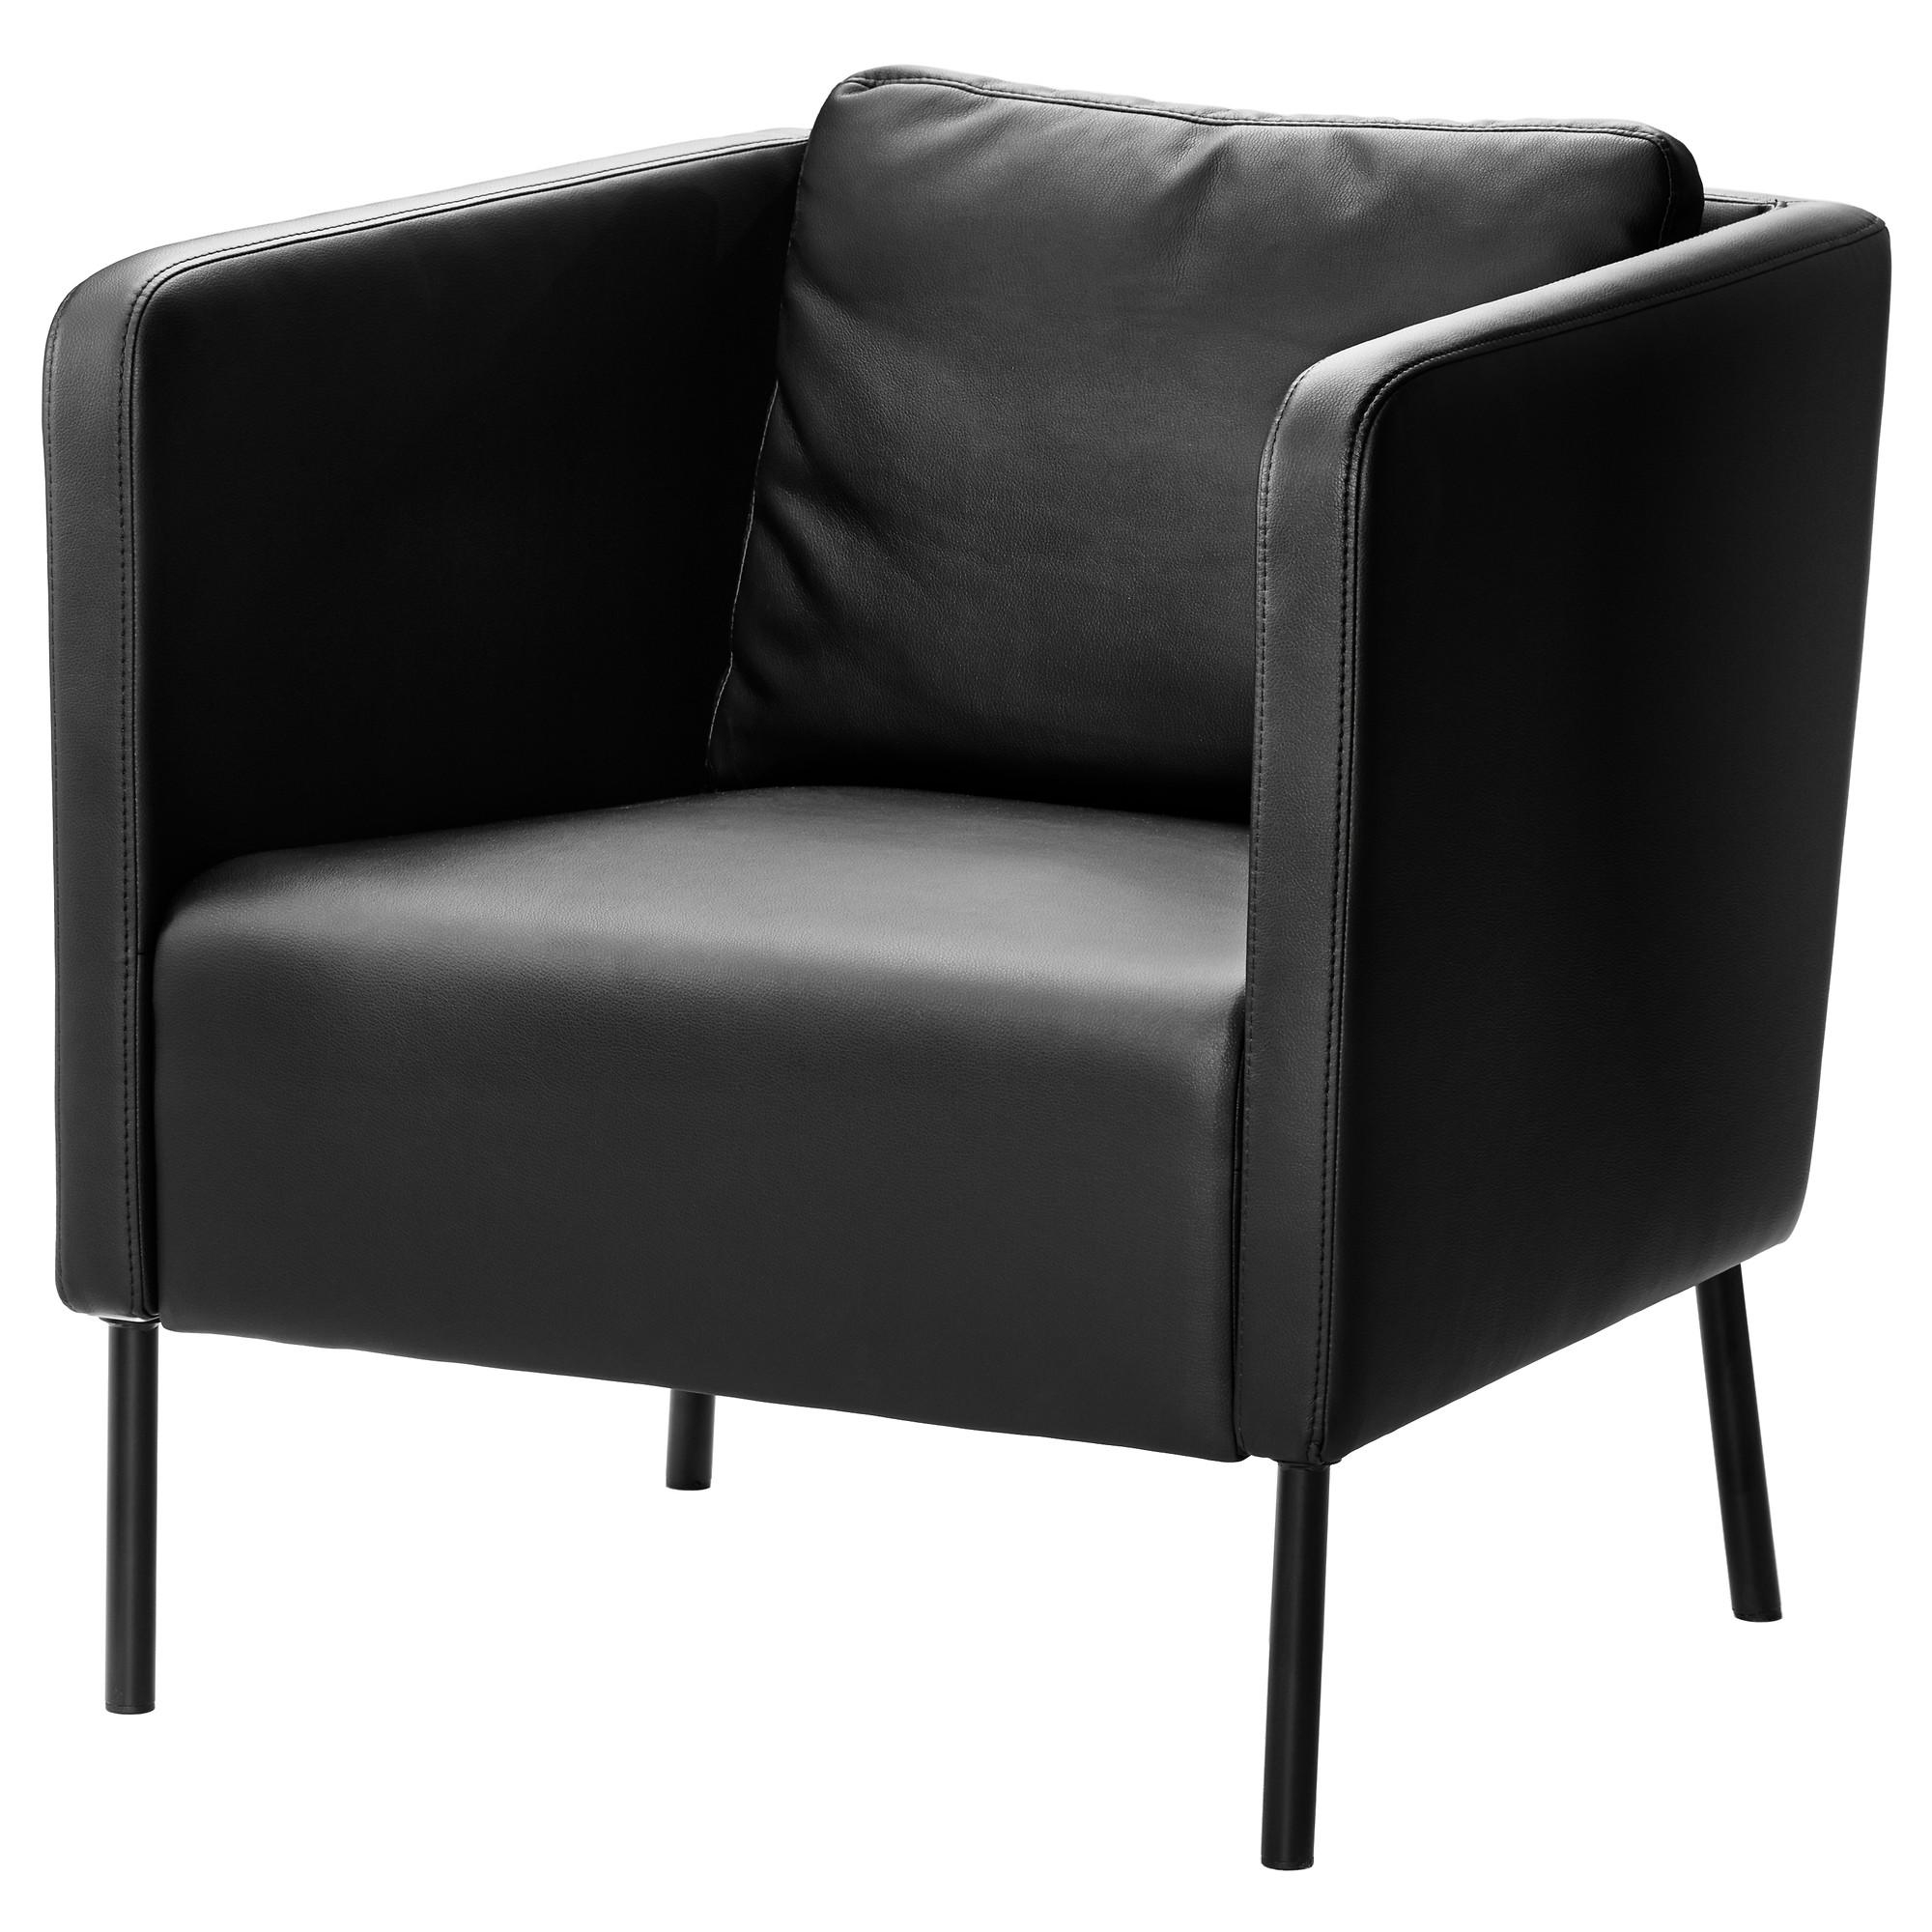 Armchairs & Recliner Chairs | Ikea Intended For Sofa Chairs Ikea (View 9 of 20)